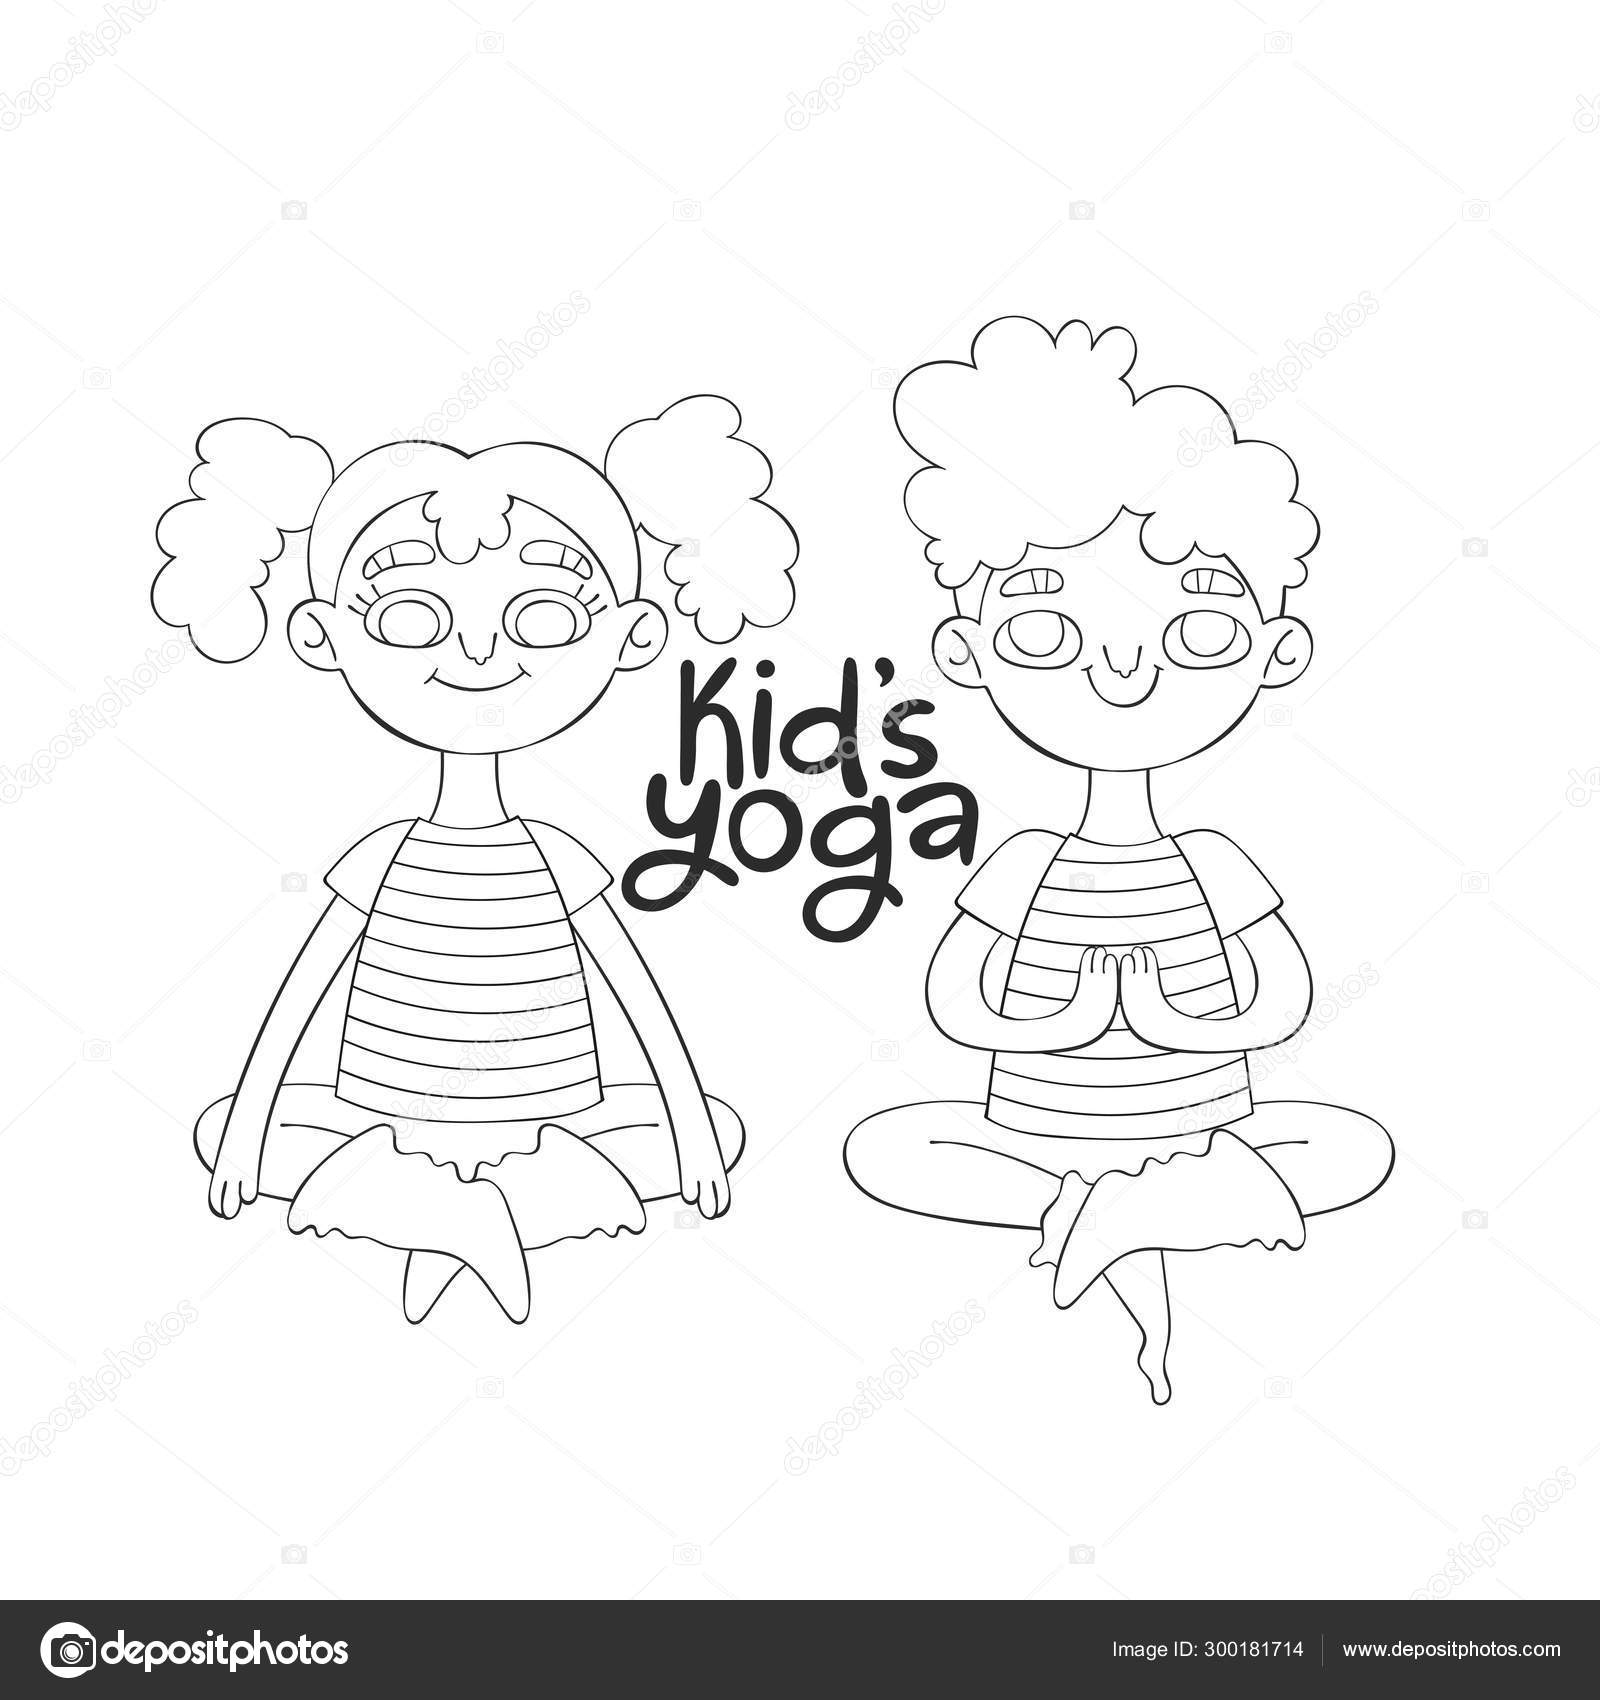 Kid Yoga Boy Girl Lotus Position Lettering Cartoon Isolated Vector Stock Vector C Ewanew 300181714